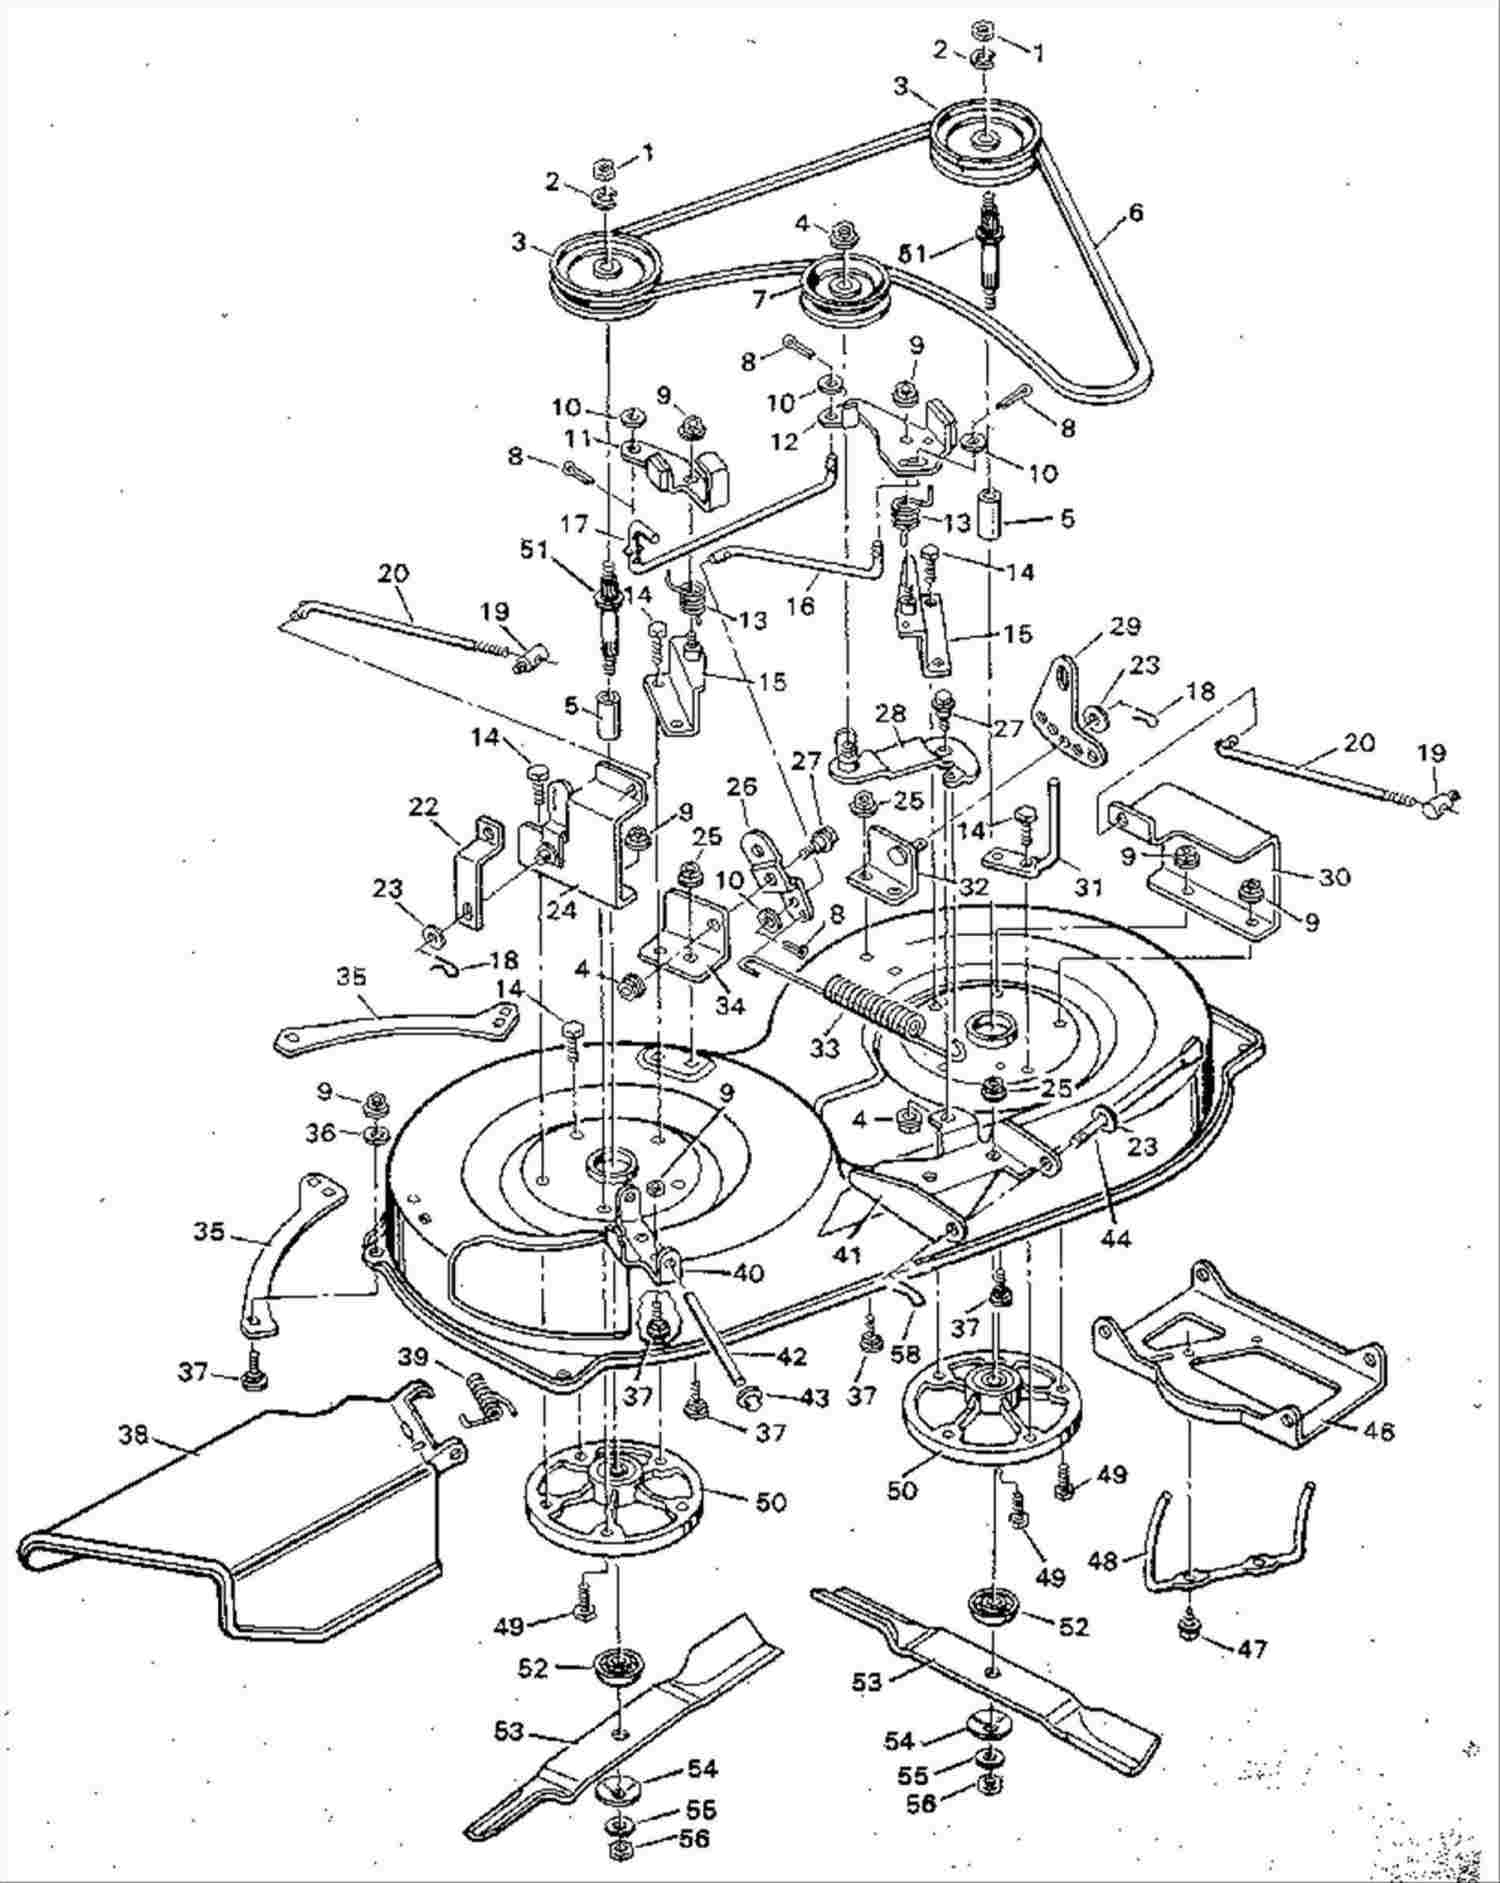 hight resolution of 1500x1883 craftsman lawn mower engine parts diagram lawn mower drawing